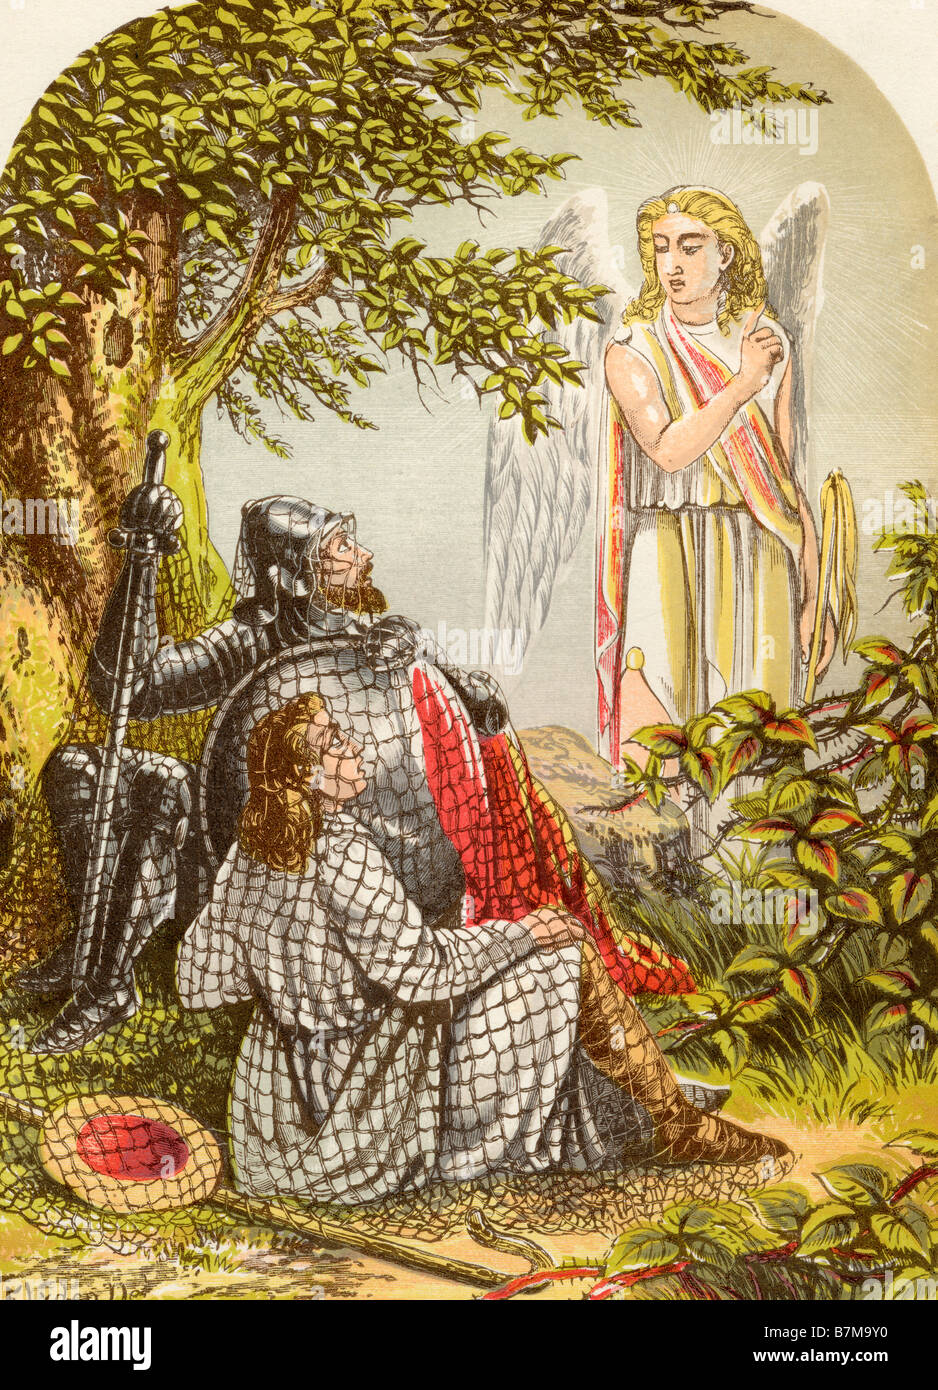 Christian and Hopeful Caught in the Net From the book The Pilgrims Progress - Stock Image